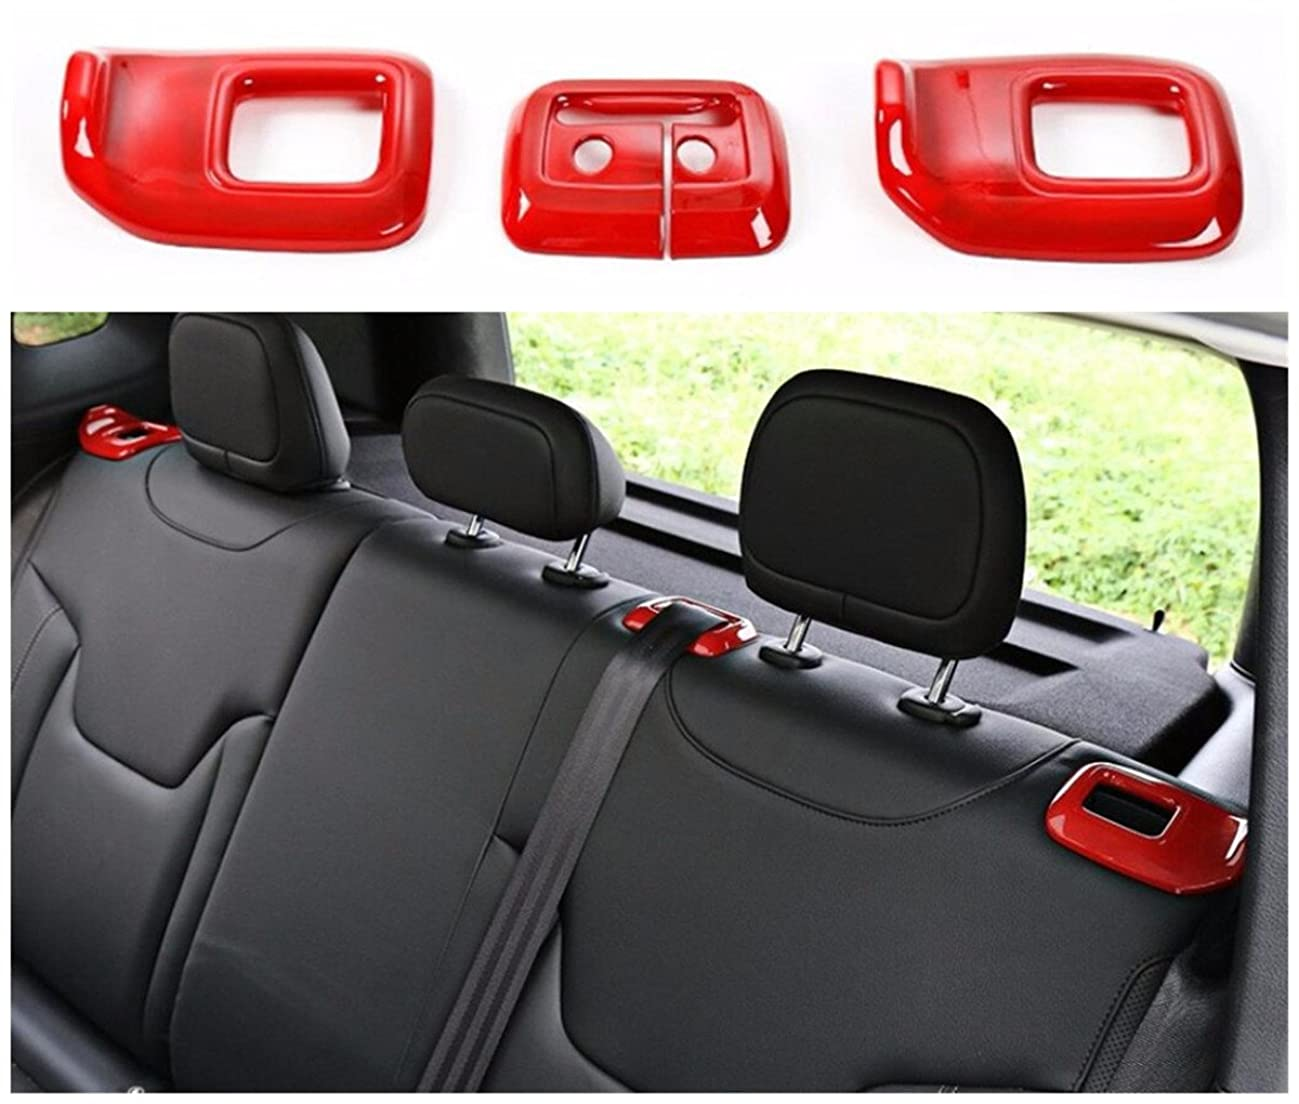 FMtoppeak Red Interior Kits ABS Rear Tail Seats Safety Belt Trim Cover for Jeep Renegade 2014 UP